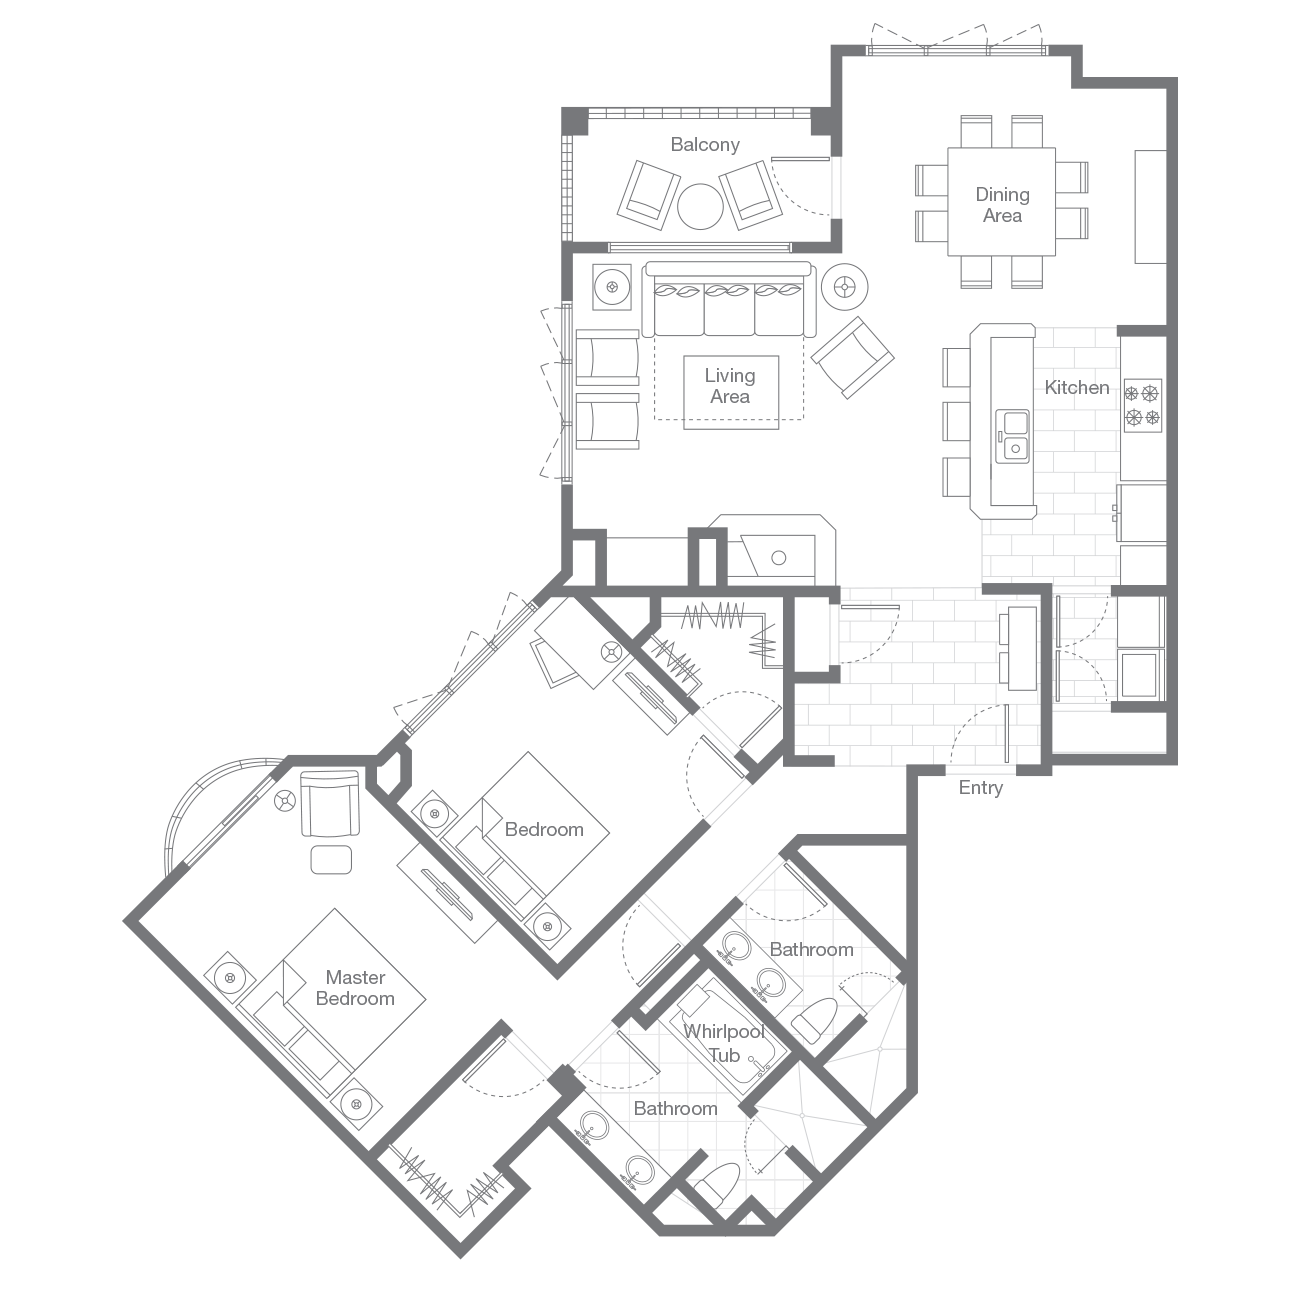 Sheraton Vistana Resort Floor Plans Sheraton Steamboat Resort Villas Two Bedroom Lockoff Villa